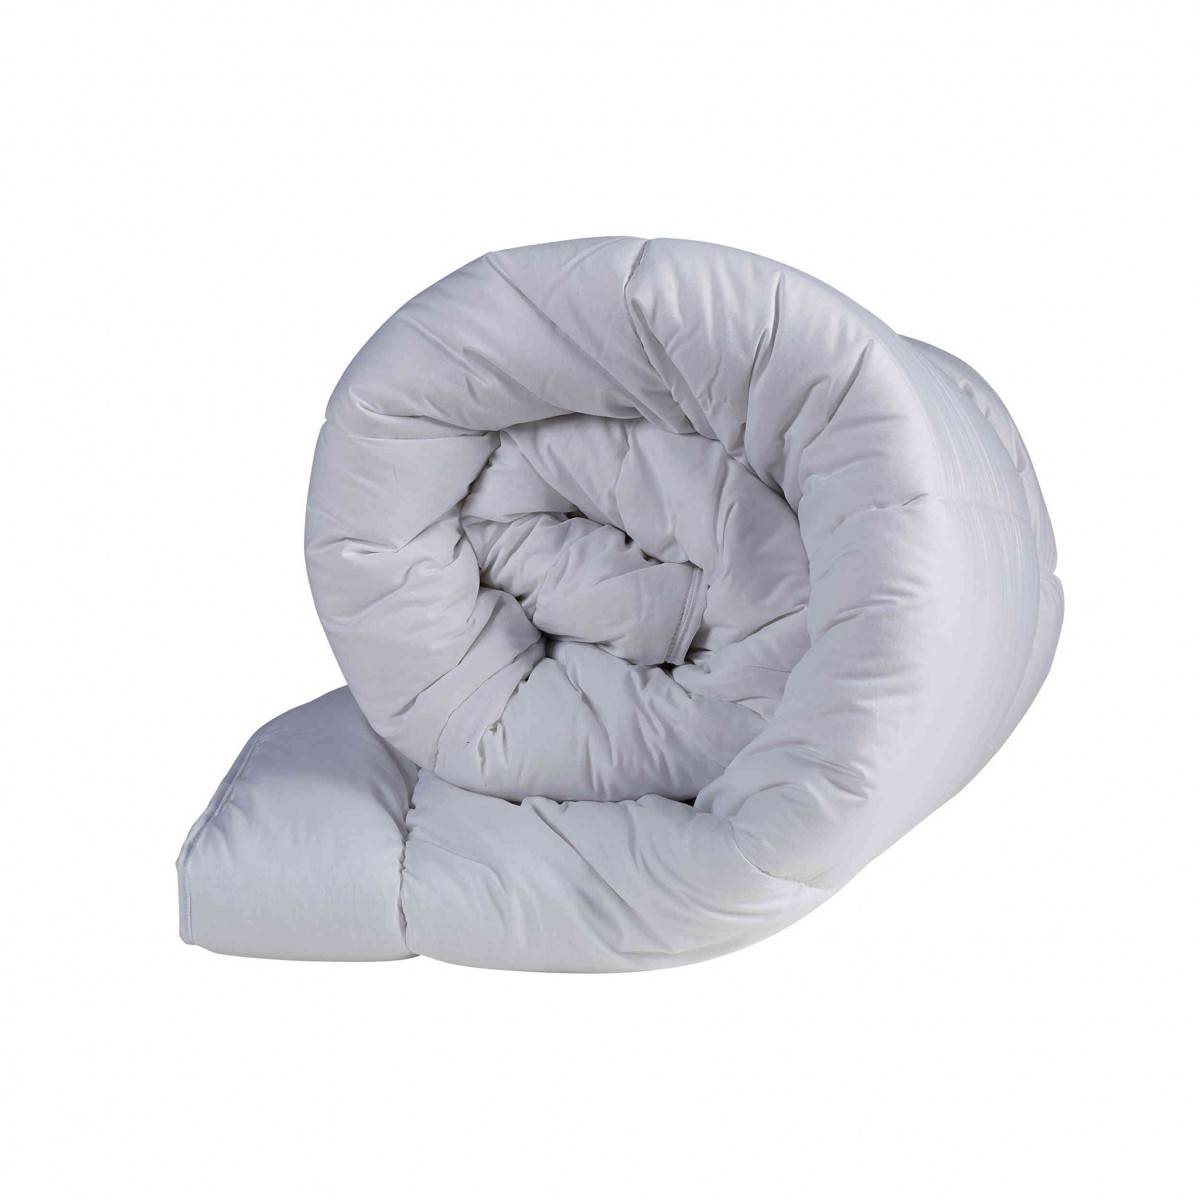 Someo Couette hiver anti-acariens 600g SOMEO 200x200